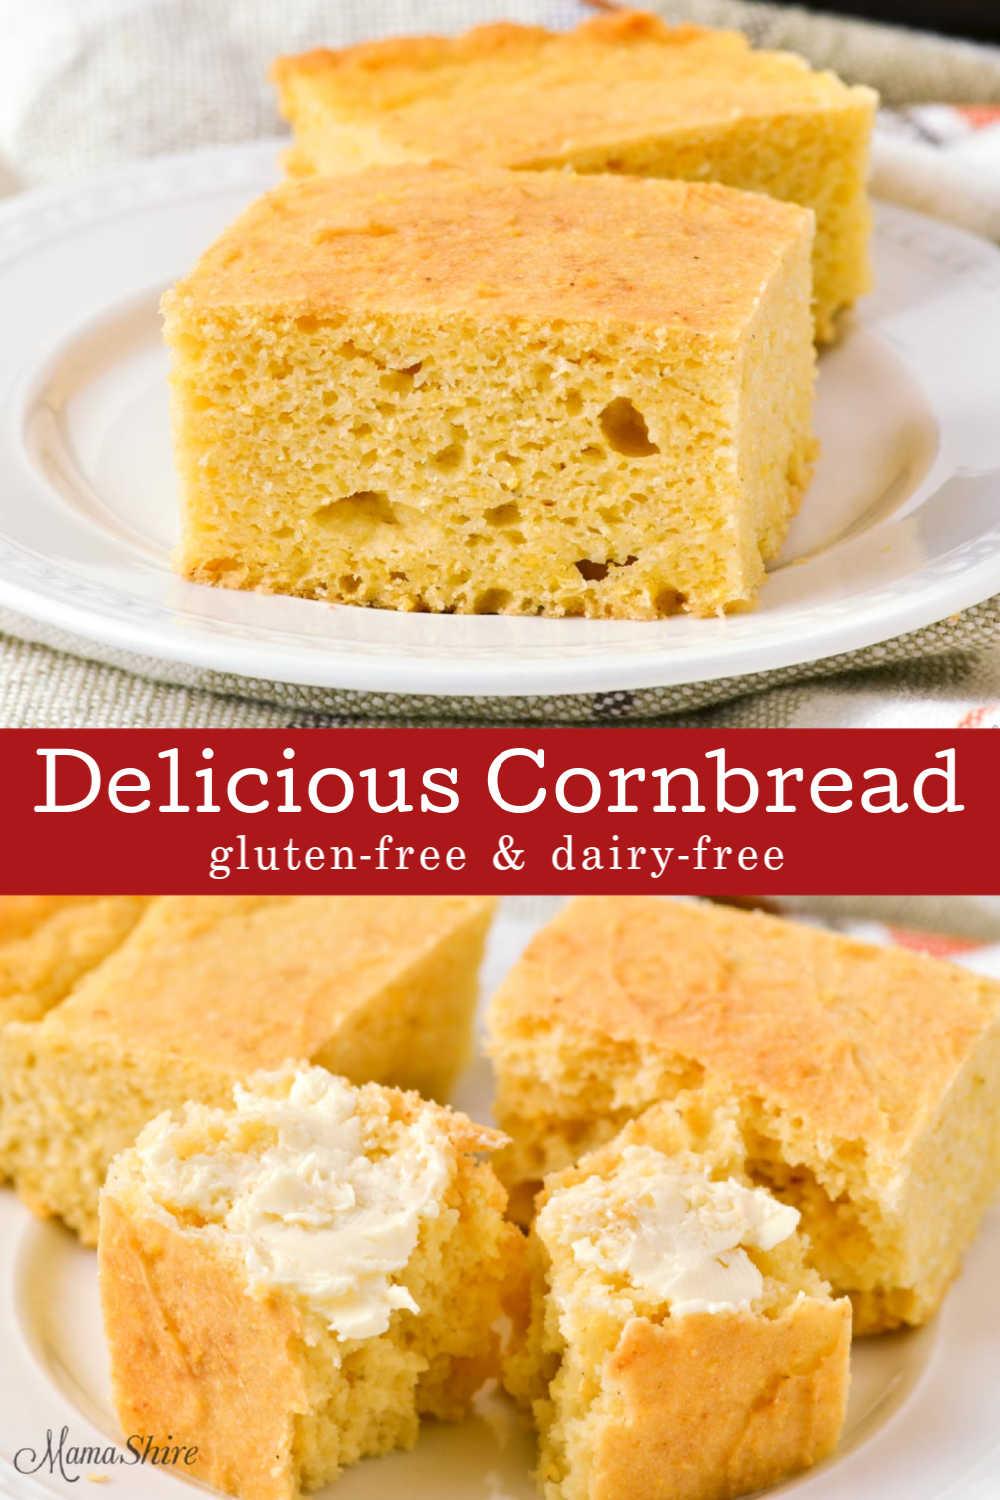 Cornbread squares with non-dairy butter made from the best gluten-free cornbread recipe.